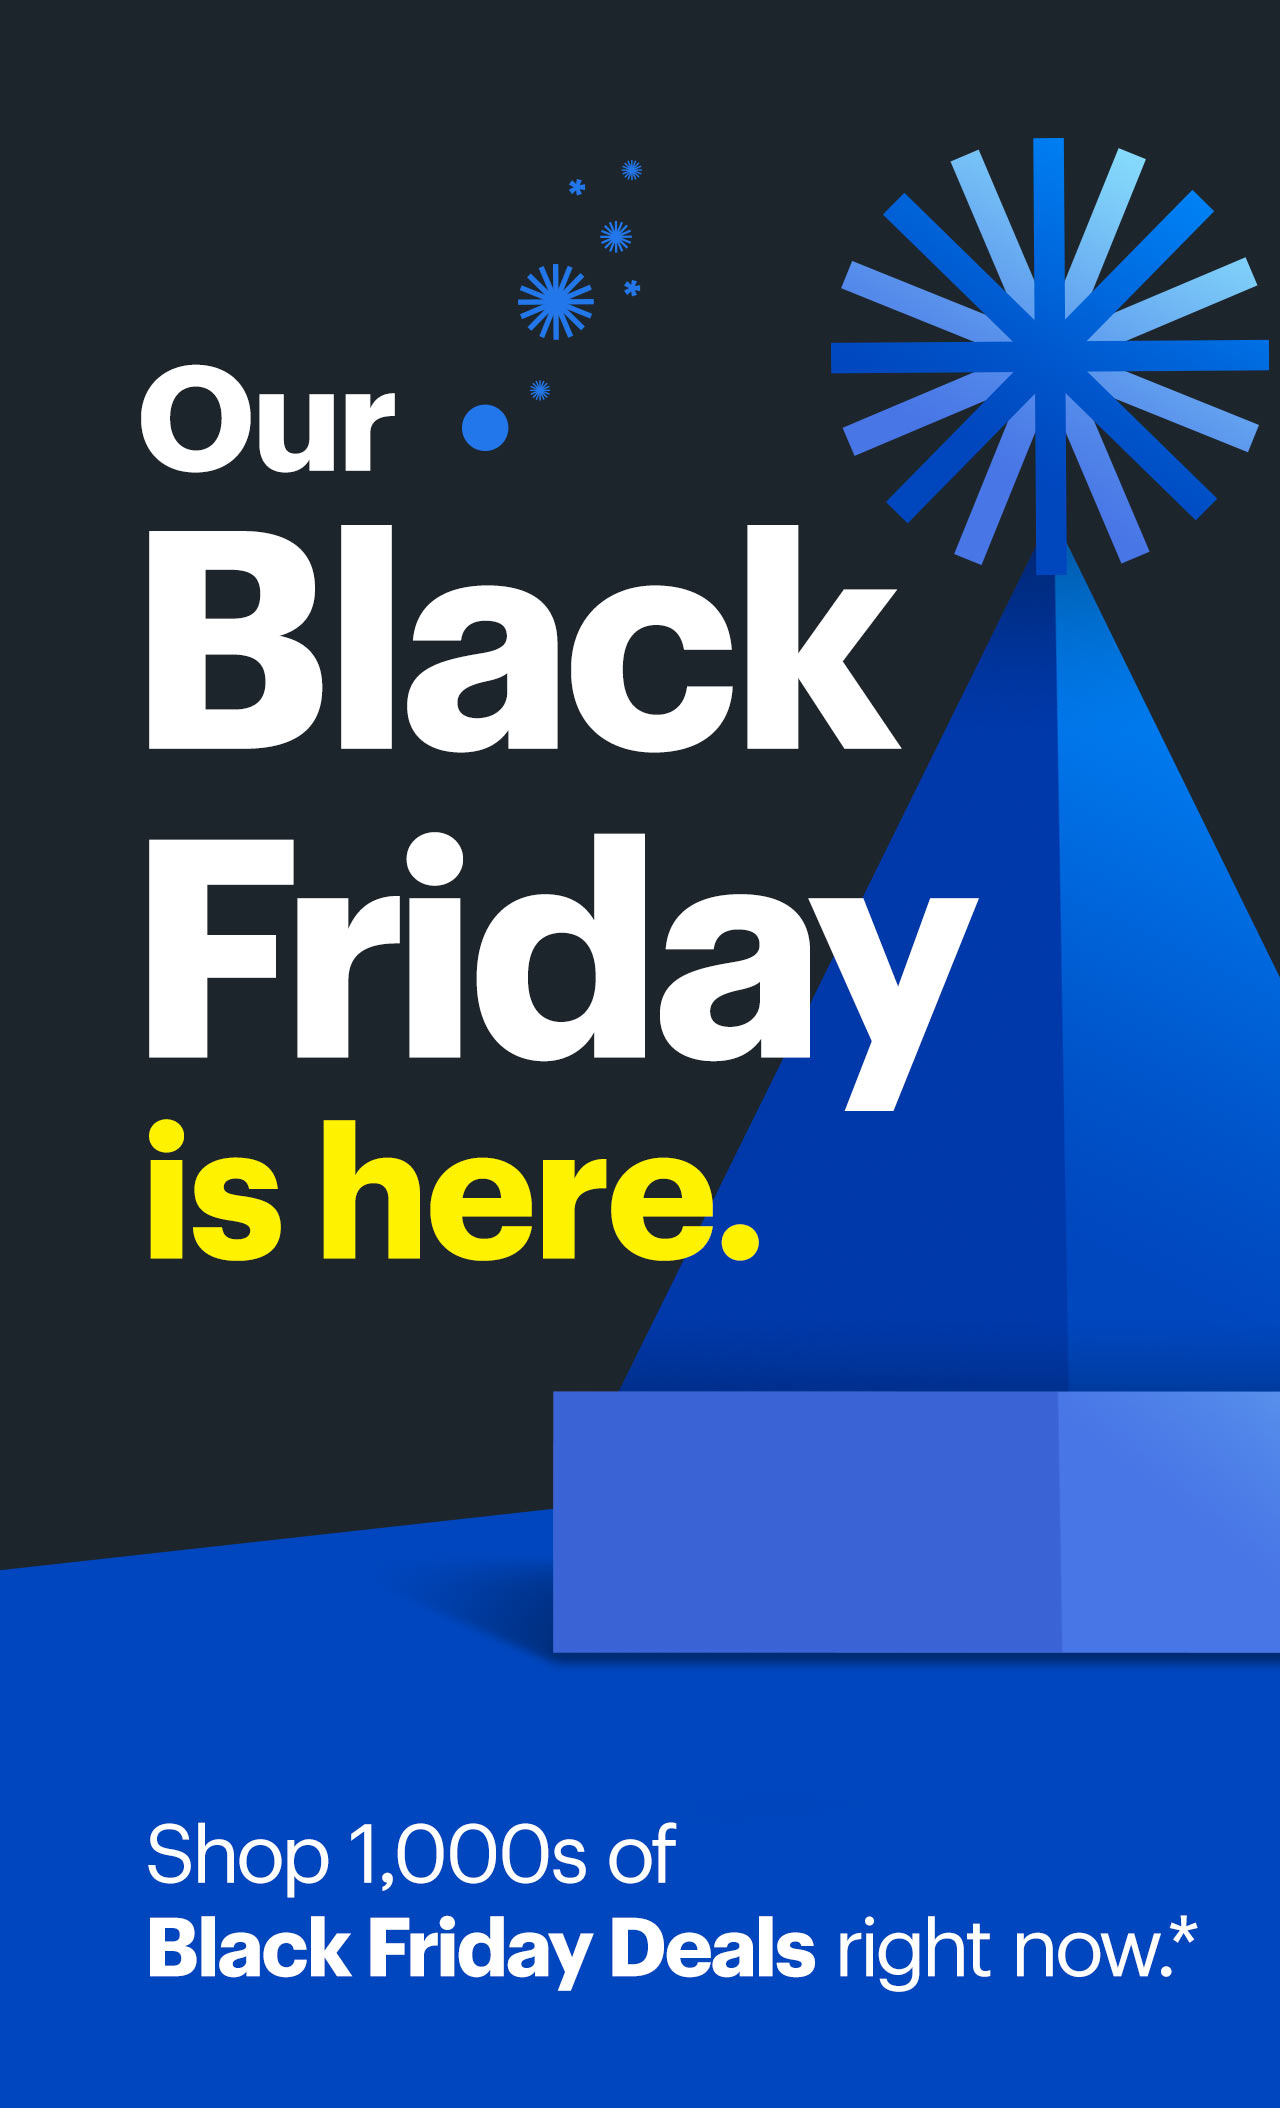 Our Black Friday is here. Shop thousands of Black Friday deals right now. Reference disclaimer.